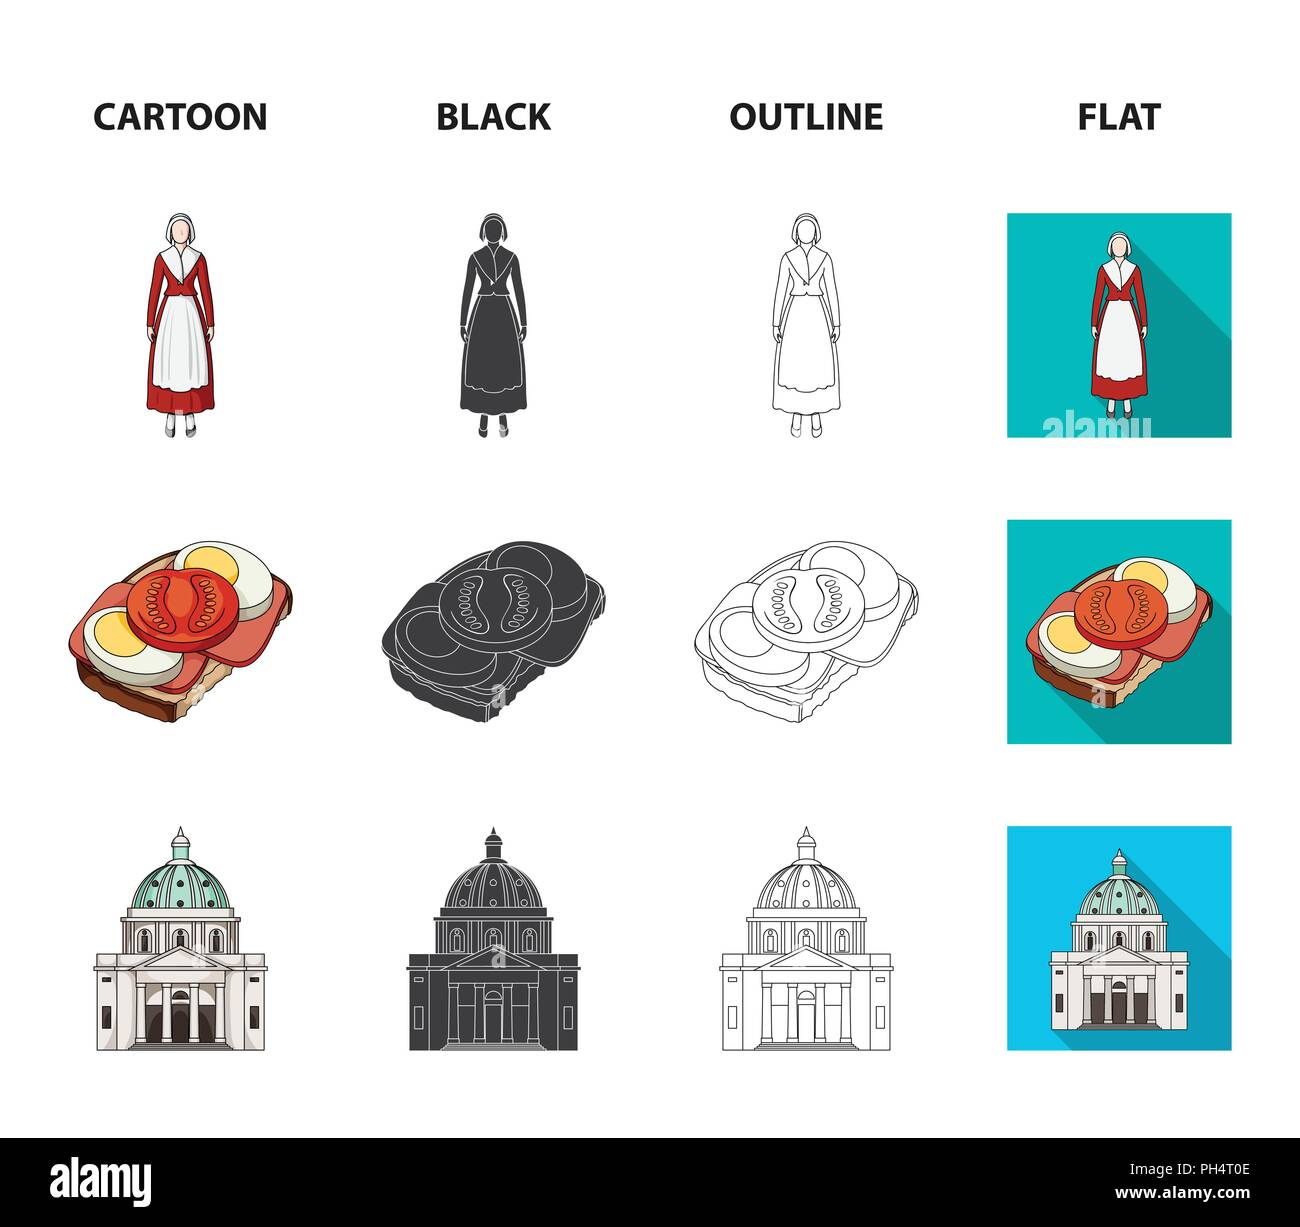 Denmark, history, restaurant, and other  icon in cartoon,black,outline,flat style.Sandwich food bread icons in set collection Stock Vector